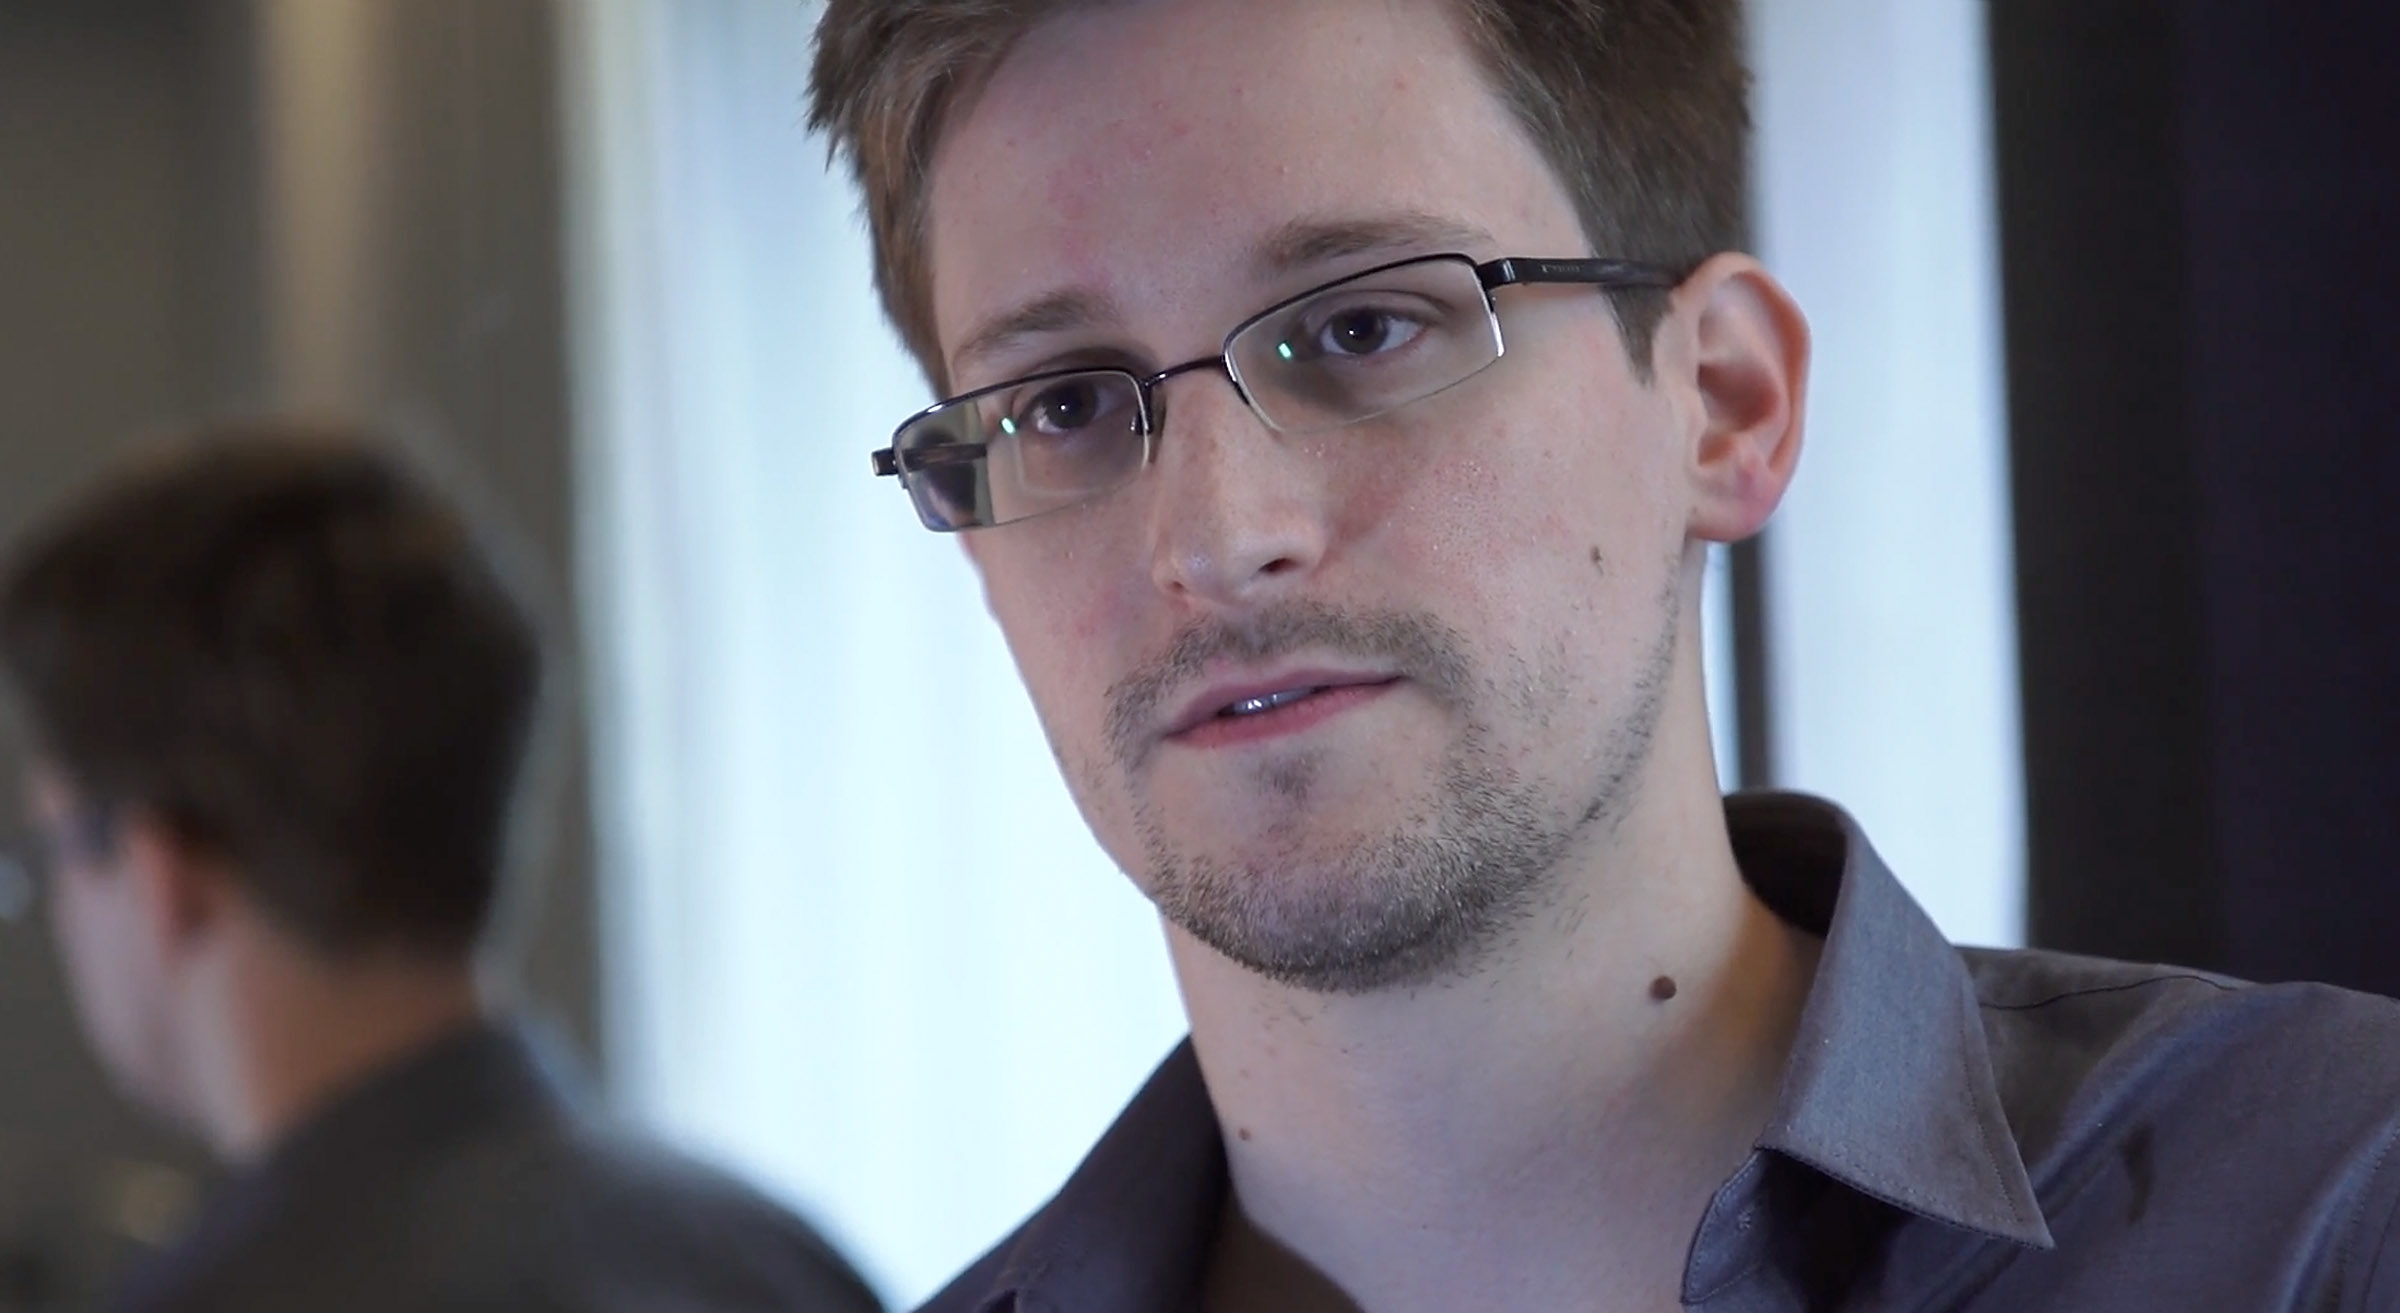 In this handout photo provided by The Guardian, Edward Snowden speaks during an interview in Hong Kong. Snowden, a 29-year-old former technical assistant for the CIA, revealed details of top-secret surveillance conducted by the United States' National Security Agency regarding telecom data. (Photo by The Guardian via Getty Images/CNN)